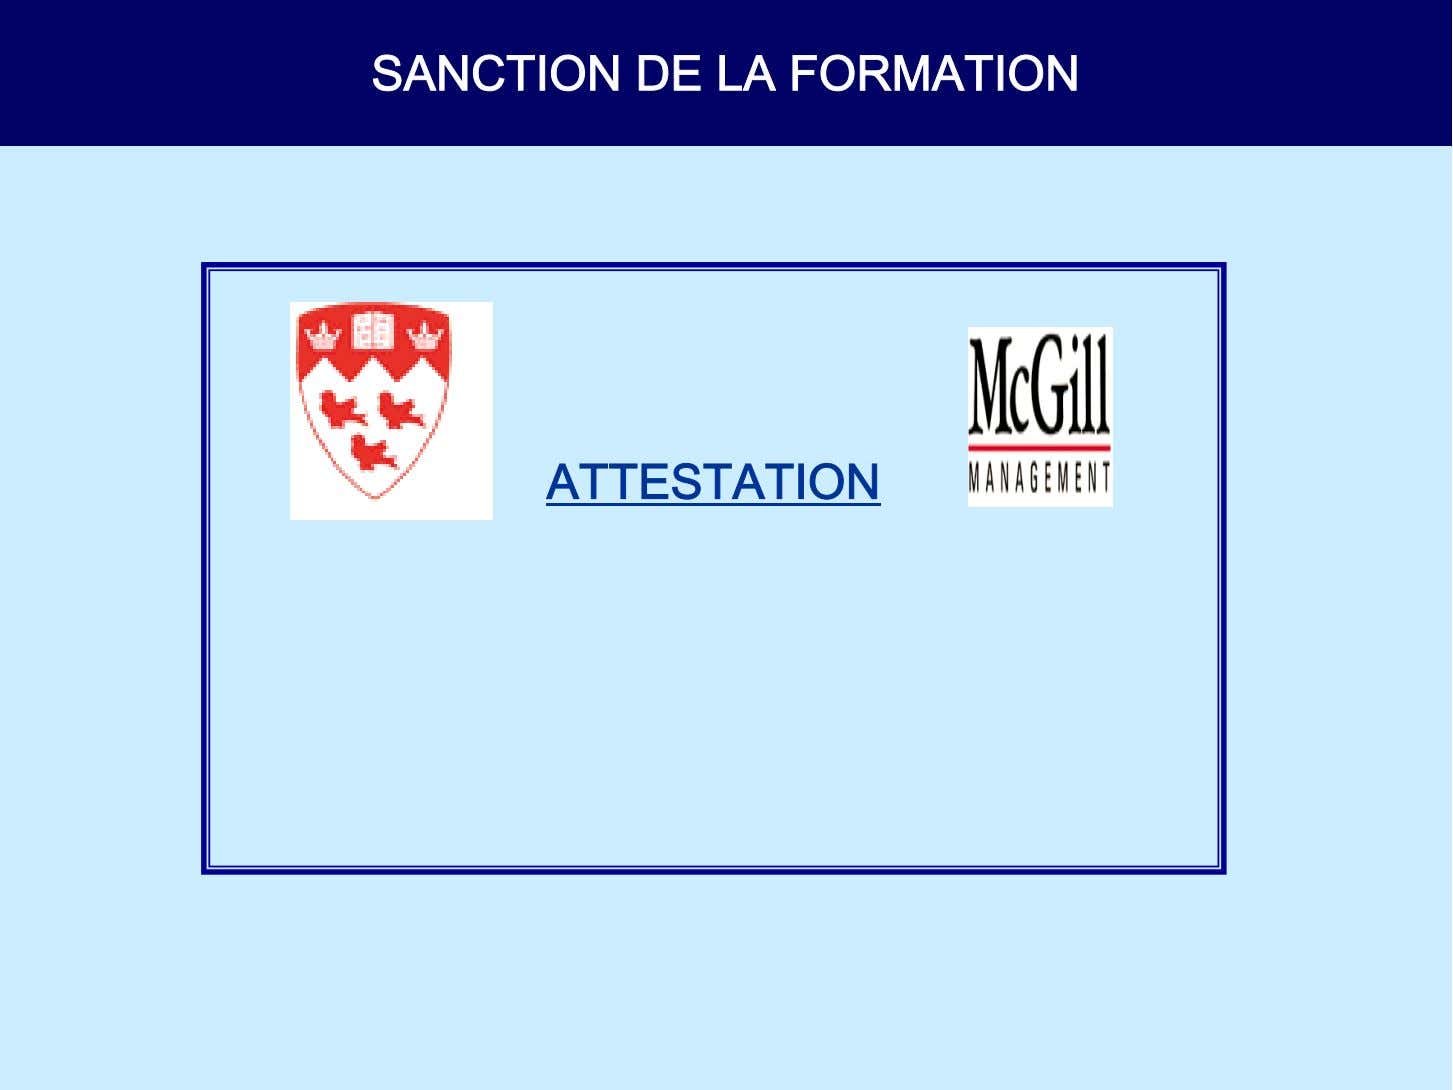 SANCTION DE LA FORMATION ATTESTATION